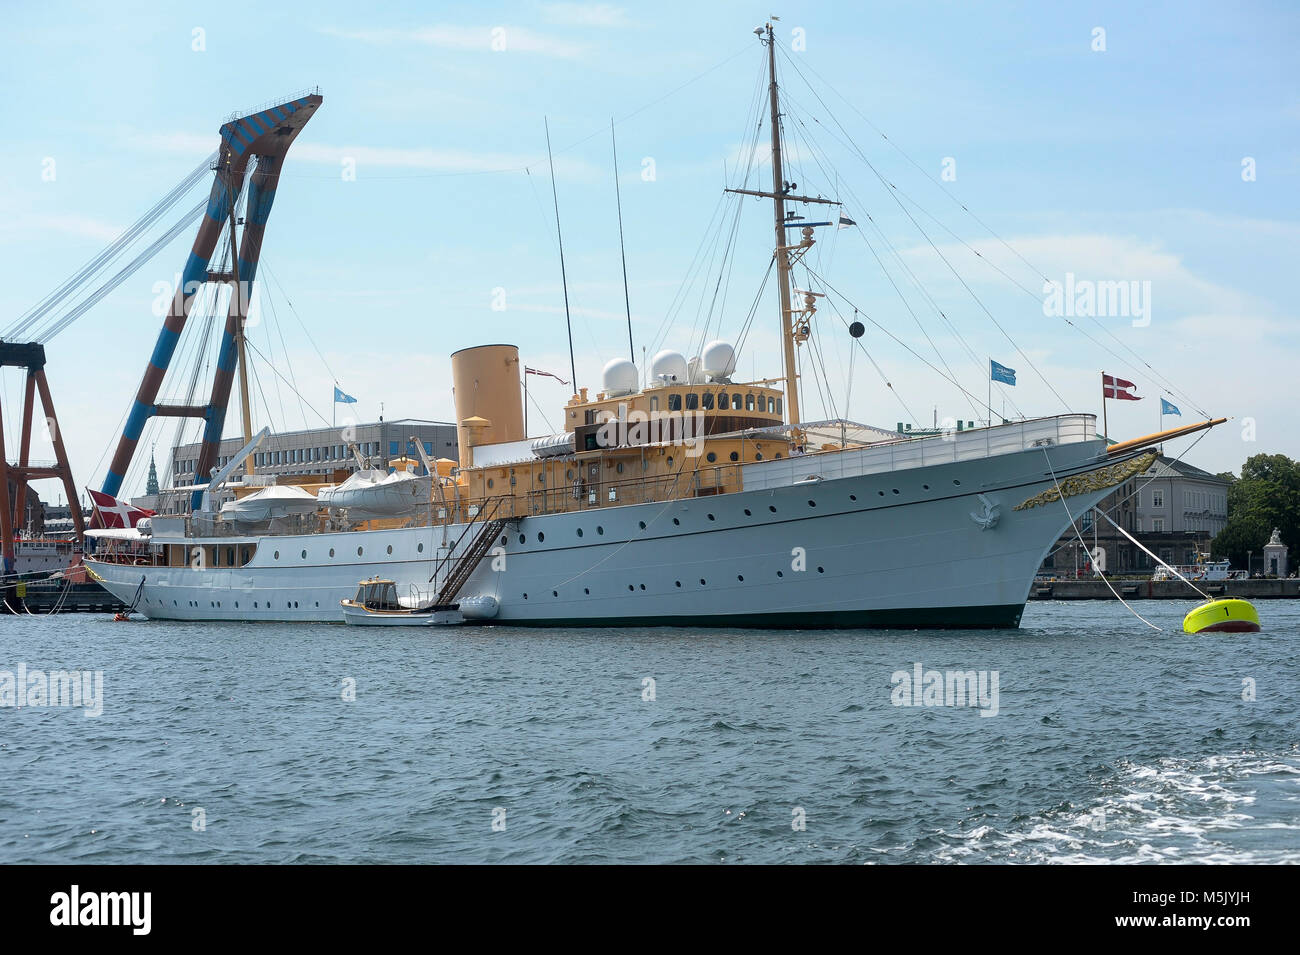 Kongeskibet Dannebrog (Her Danish Majesty's Yacht Dannebrog) built in 1932 in Copenhagen, Denmark, August 6th 2015 Stock Photo